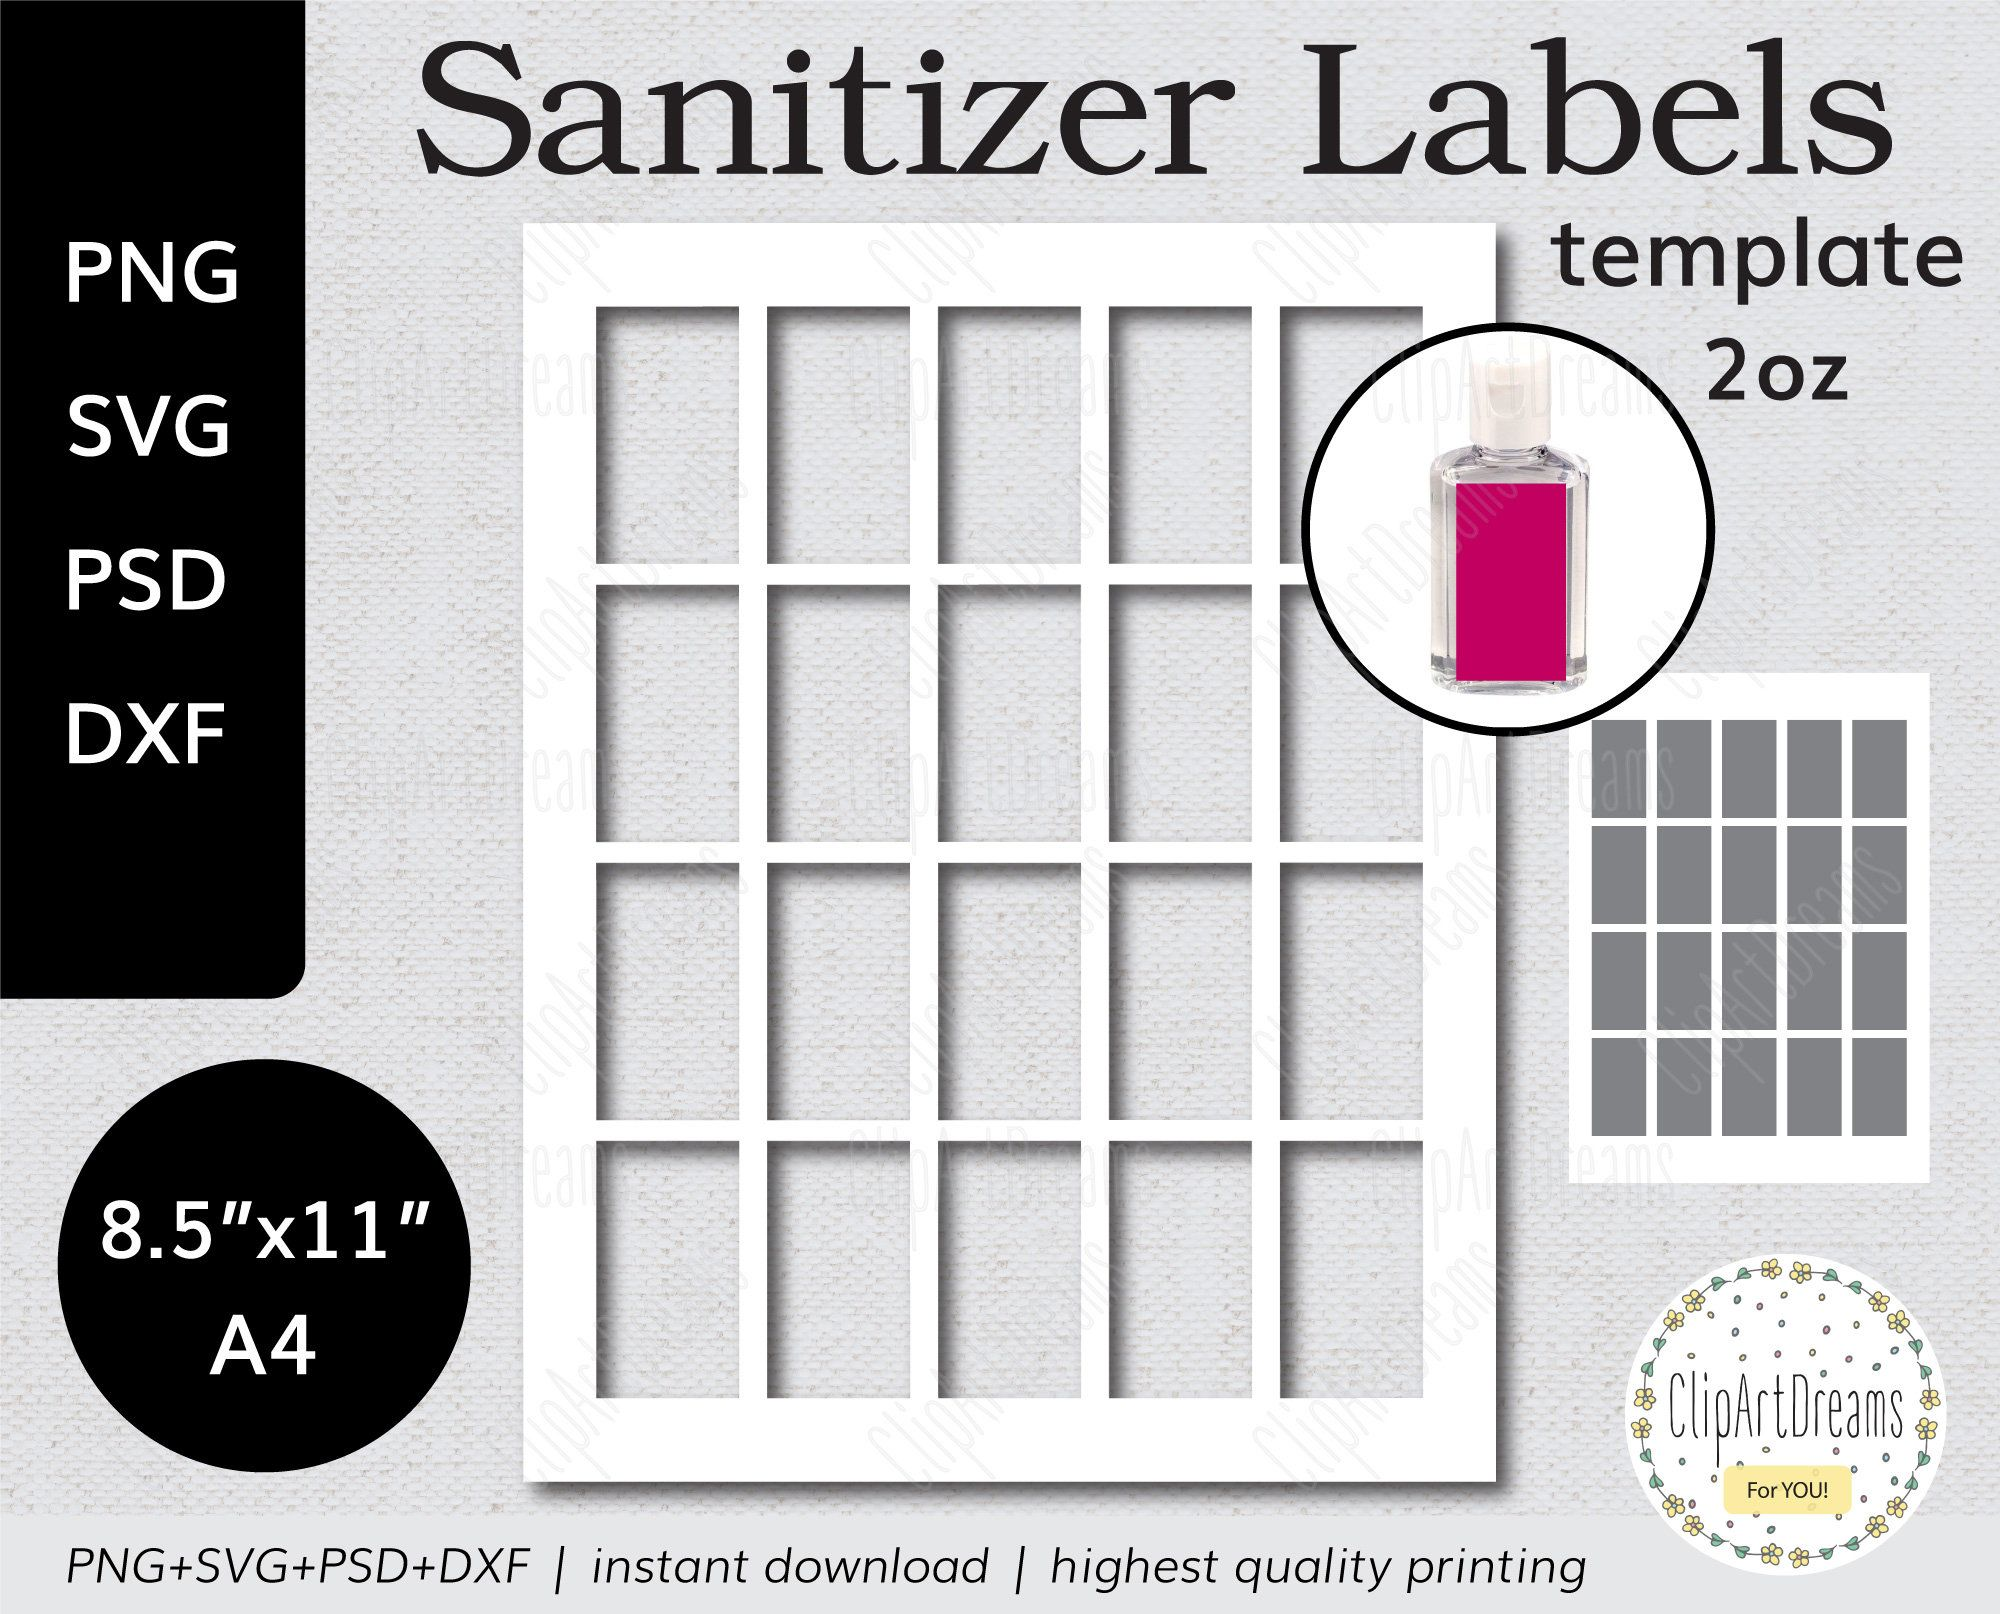 Hand Sanitizer Label Template For Purell 2oz Instant Download Etsy In 2021 Label Templates Hand Sanitizer Gift Tag Template Hand sanitizer label template free